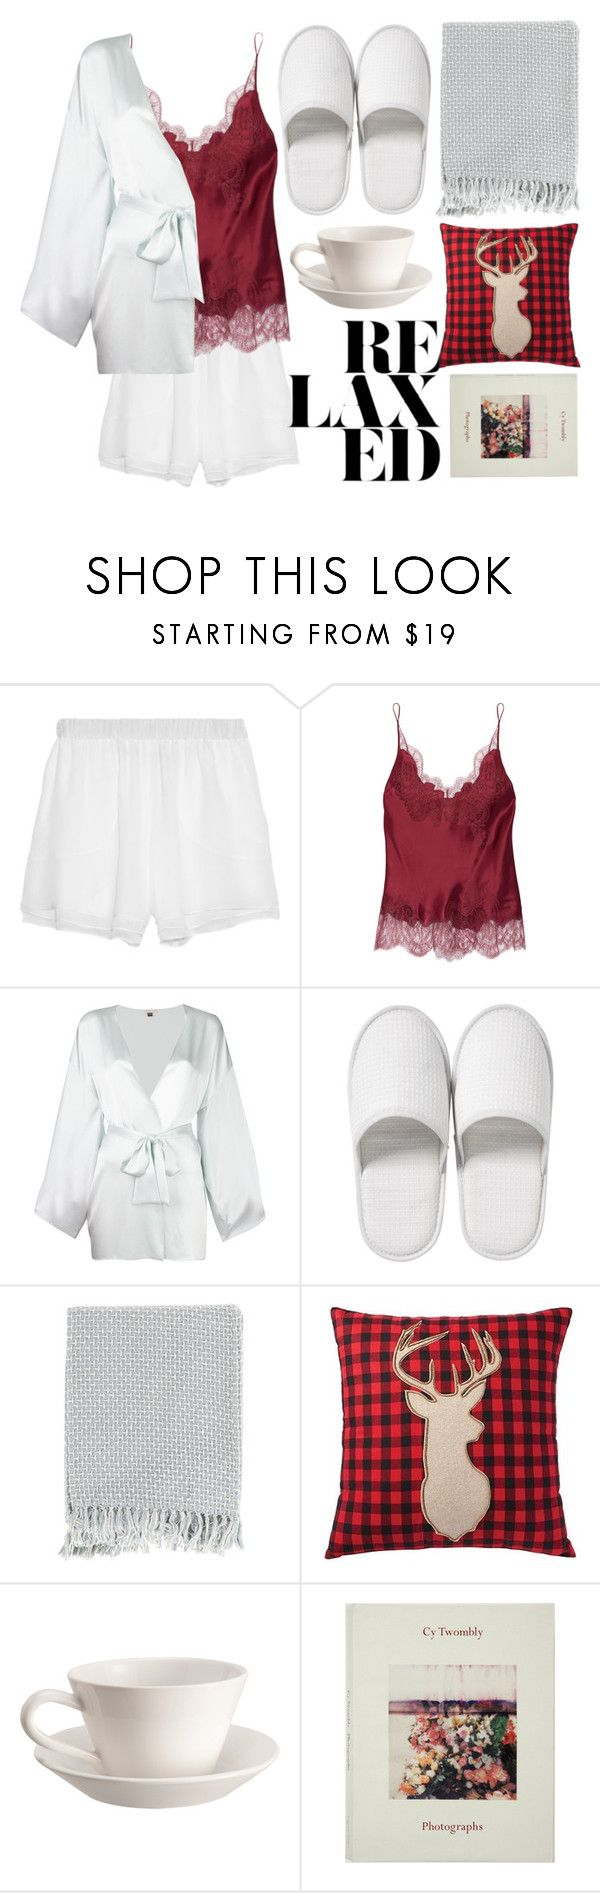 """Scrounge and Lounge"" by jaeim ❤ liked on Polyvore featuring Prabal Gurung, Carine Gilson, Gilda & Pearl, Bedeck, Surya, Home Decorators Collection, Bourg-Joly Malicorne and LovelyLoungewear"